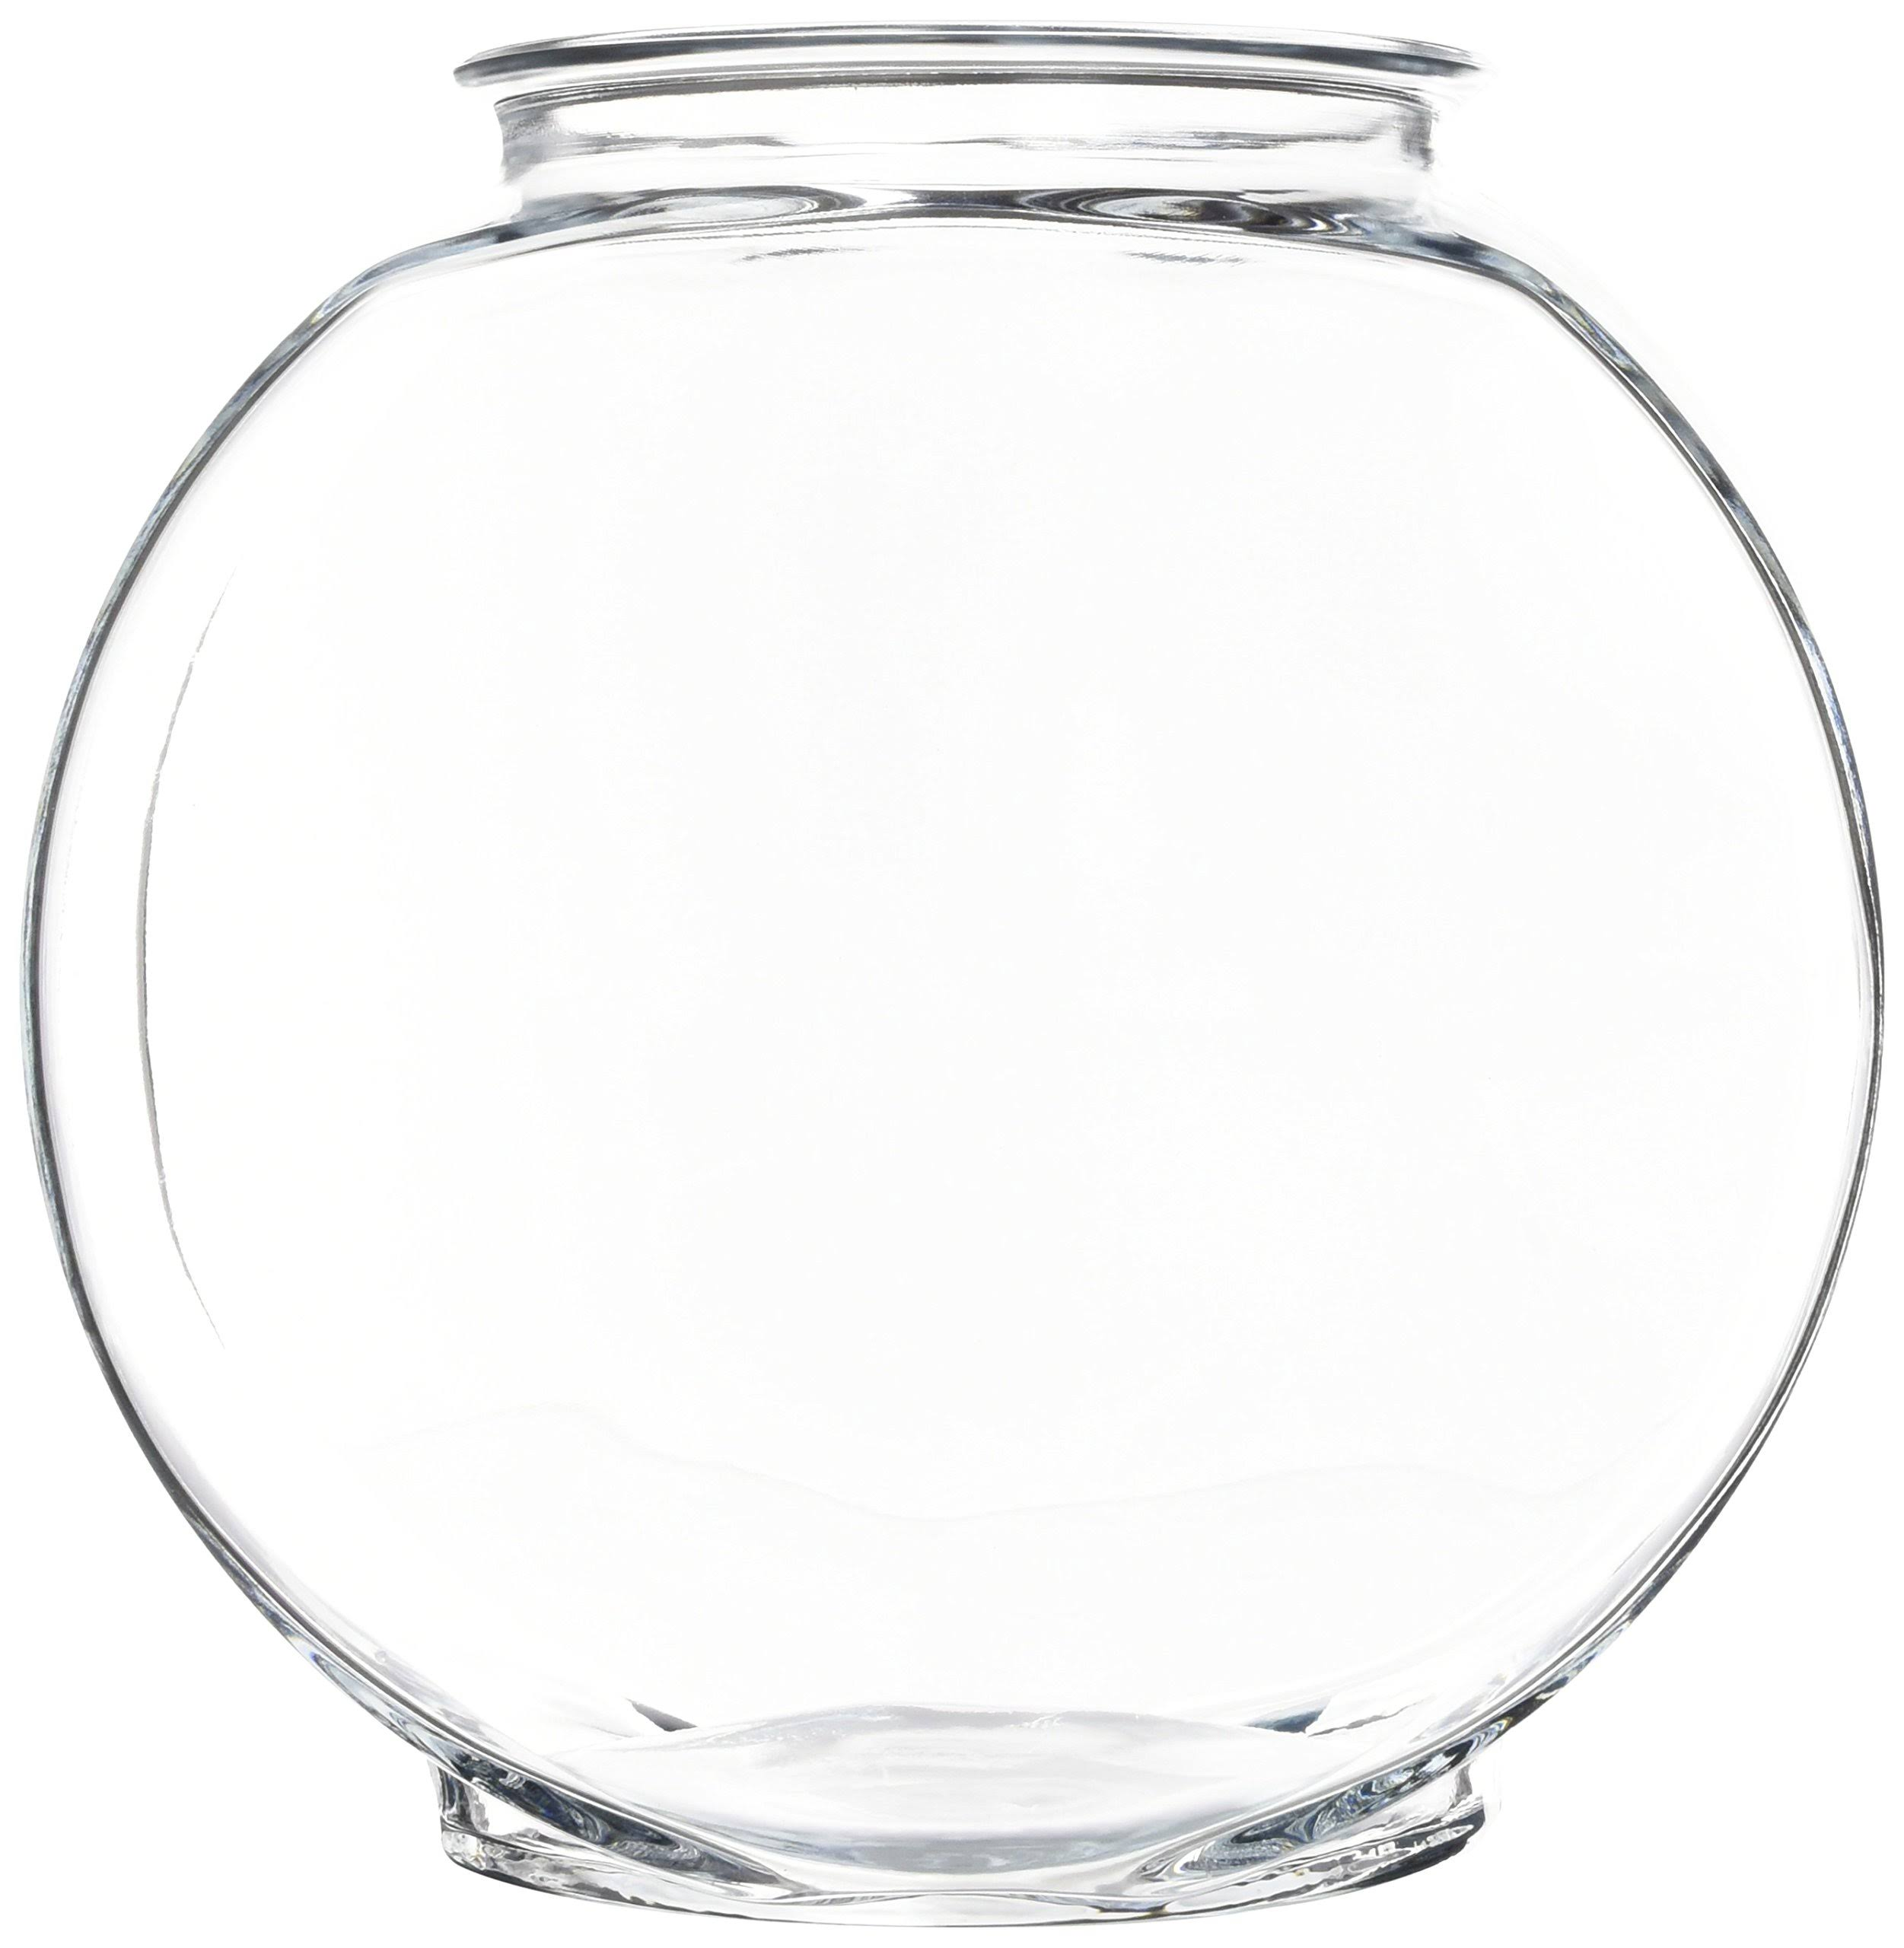 Anchor Hocking Classic Fish Bowl - Drum Style, 1gal